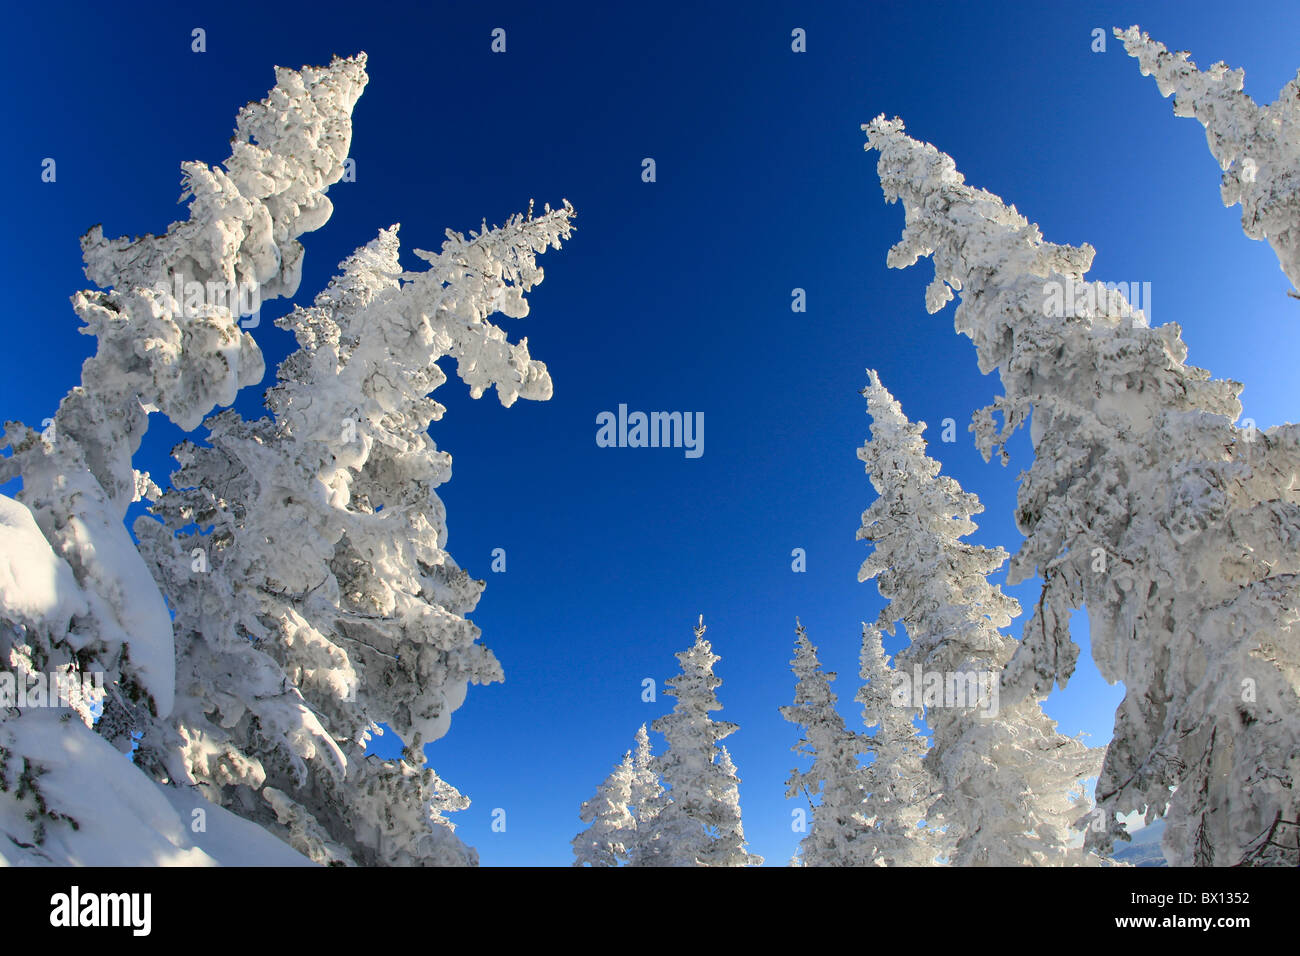 View from below of snow-covered fir trees tops with blue sky upon them - Stock Image